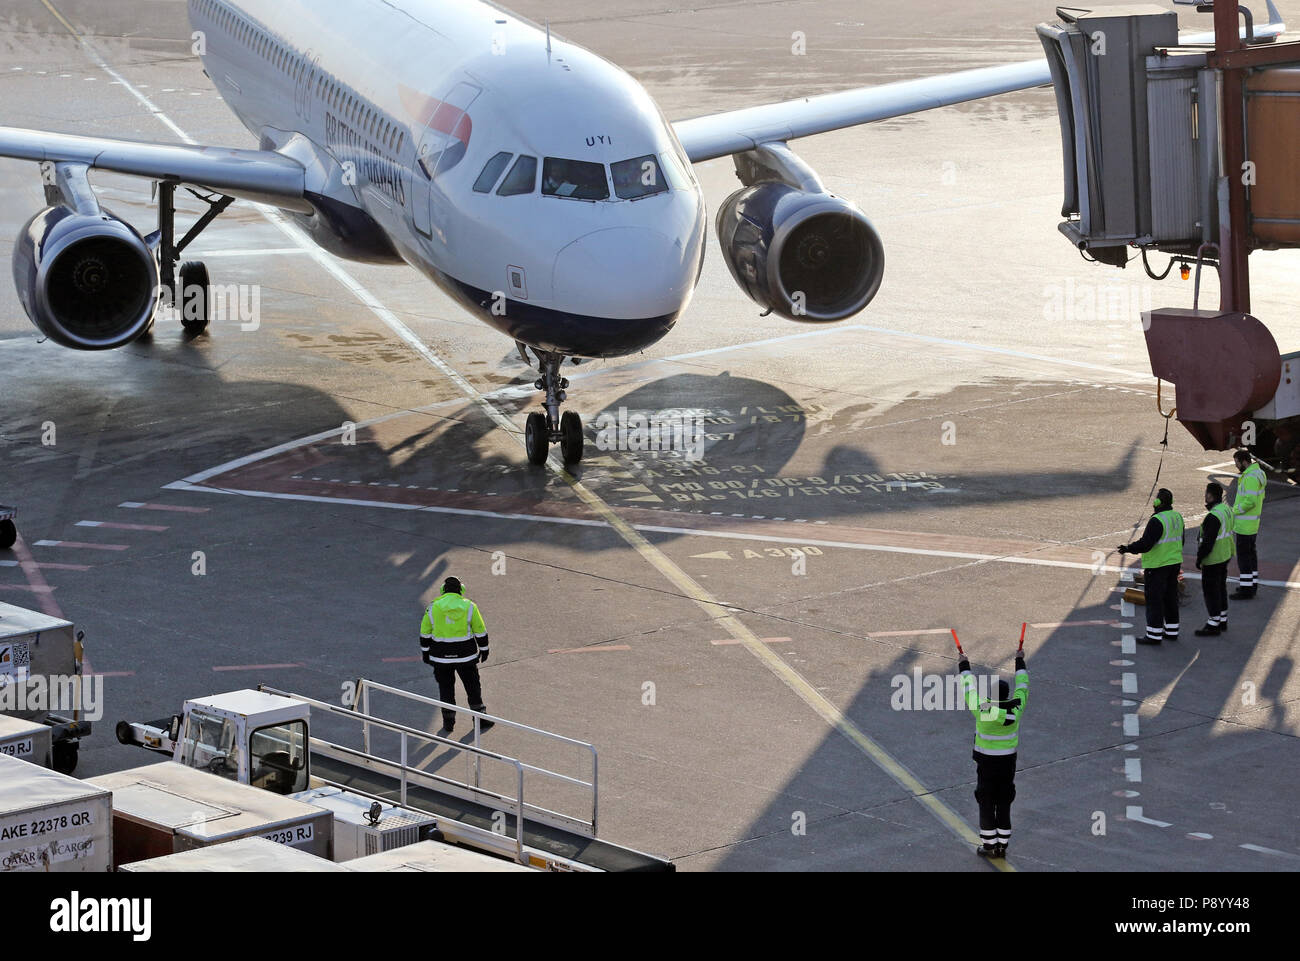 Berlin, Germany, Ramp Agent places a British Airways aircraft on the apron of Berlin Tegel Airport in the parking position - Stock Image